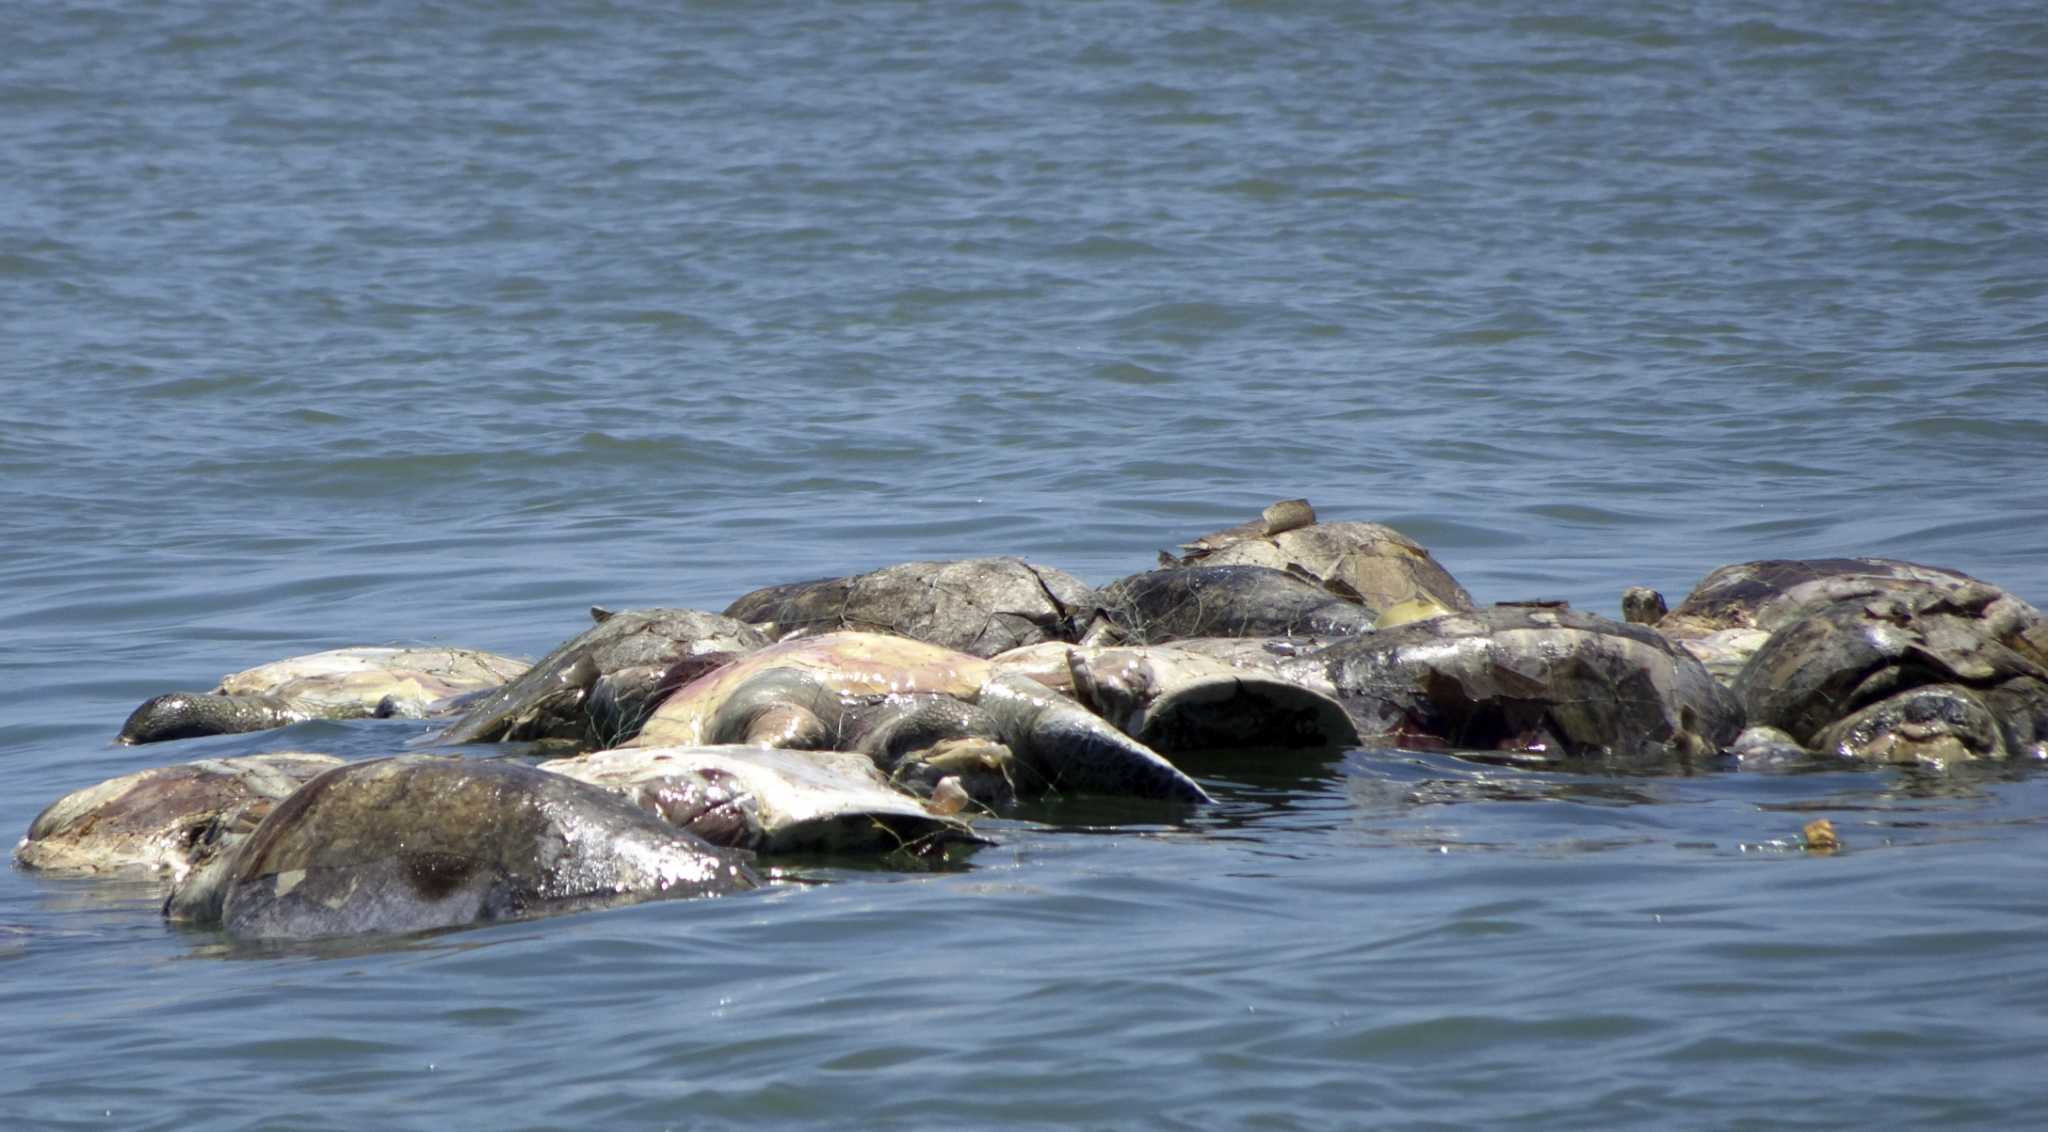 300 Dead Endangered Sea Turtles Found Entangled In Fishing